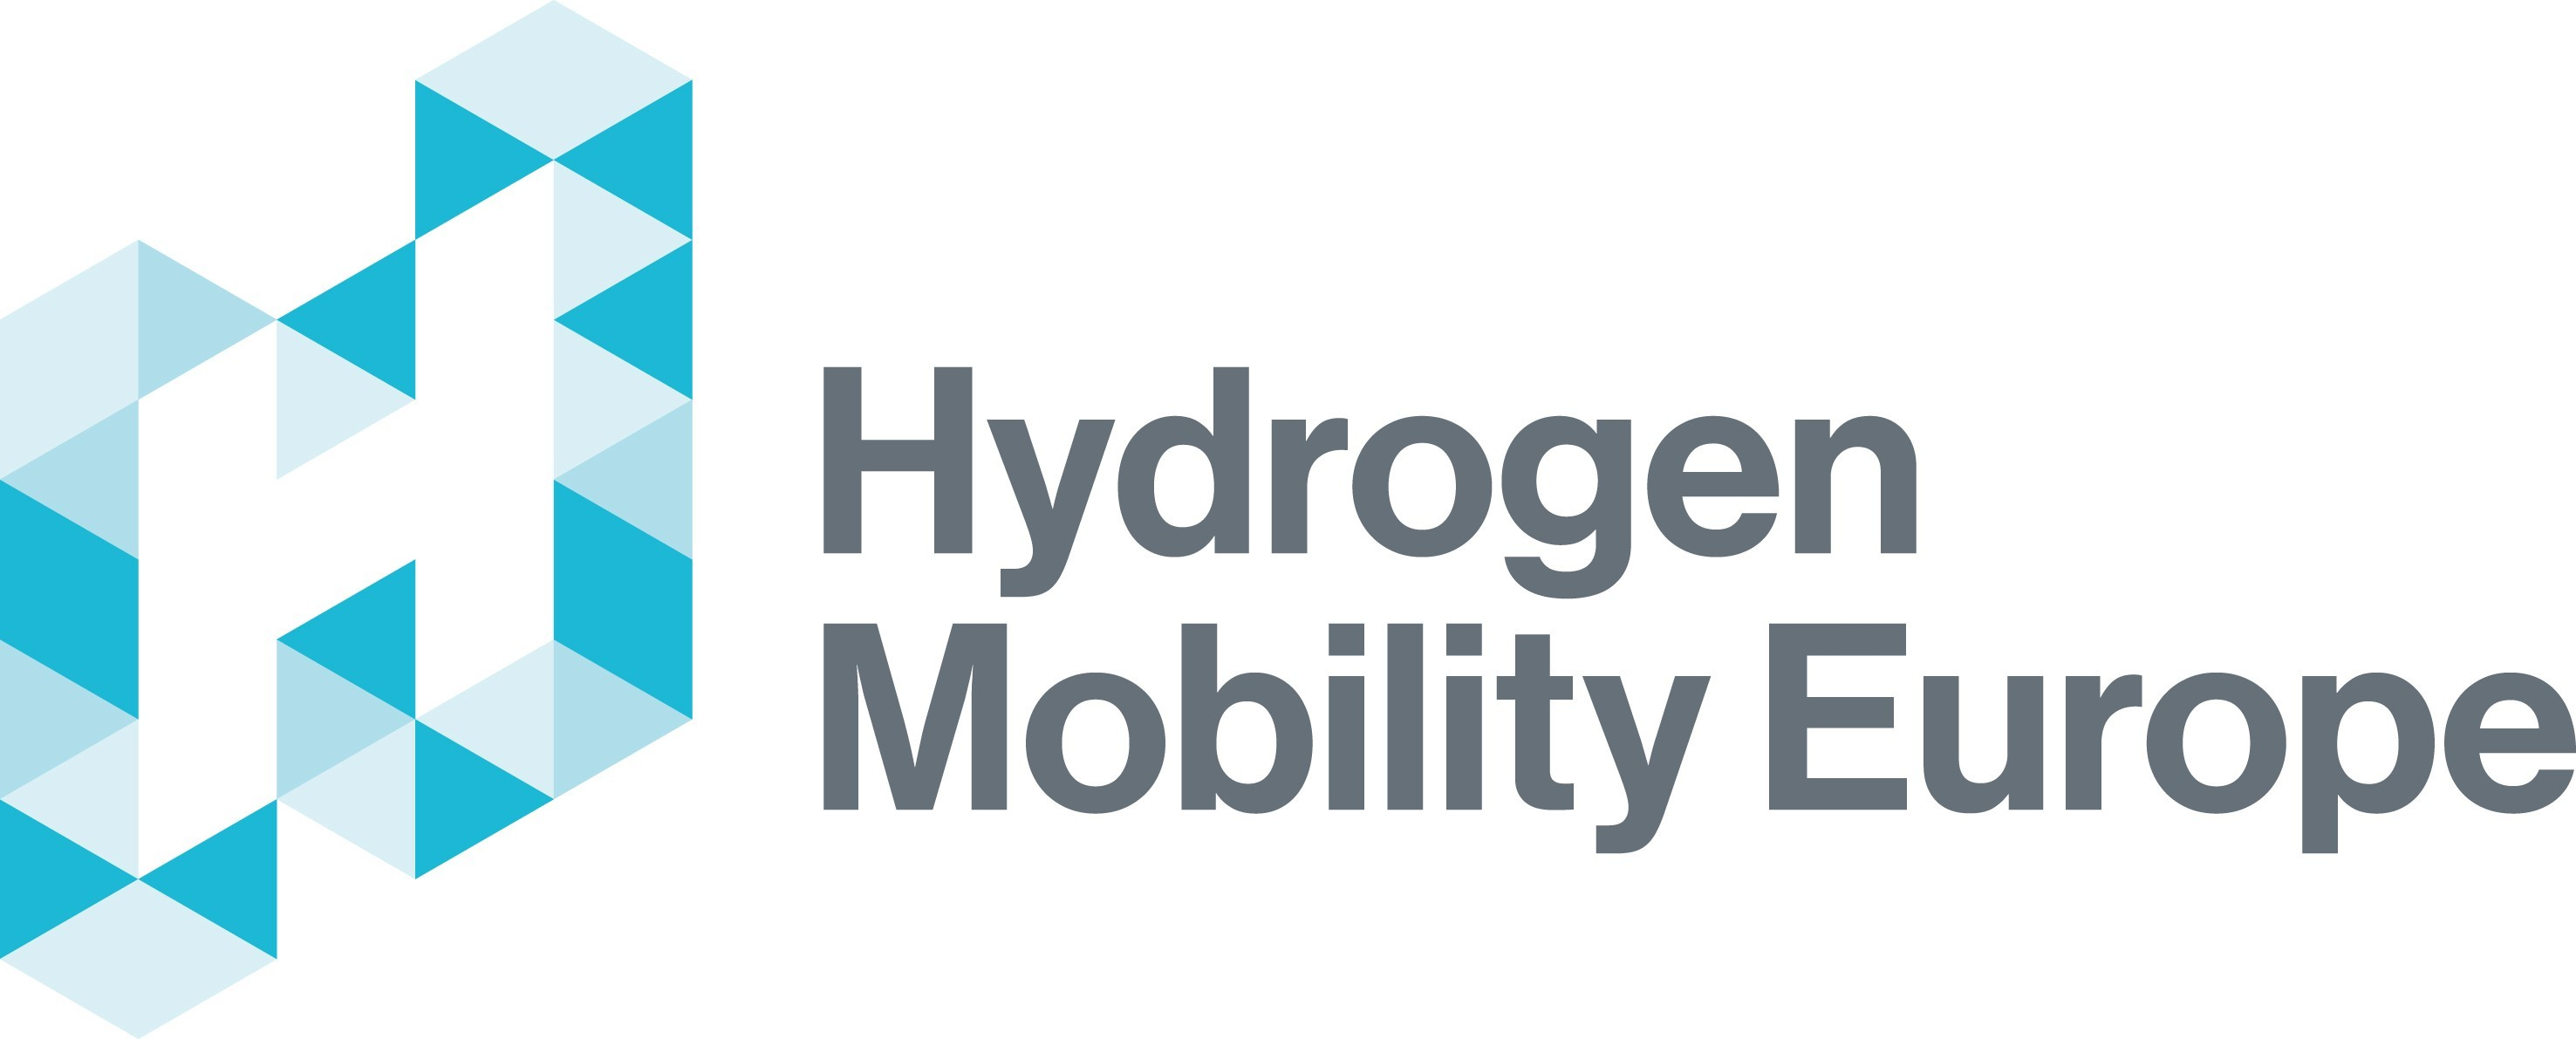 Hydrogen Mobility Europe H2ME deploys its first 100 zero